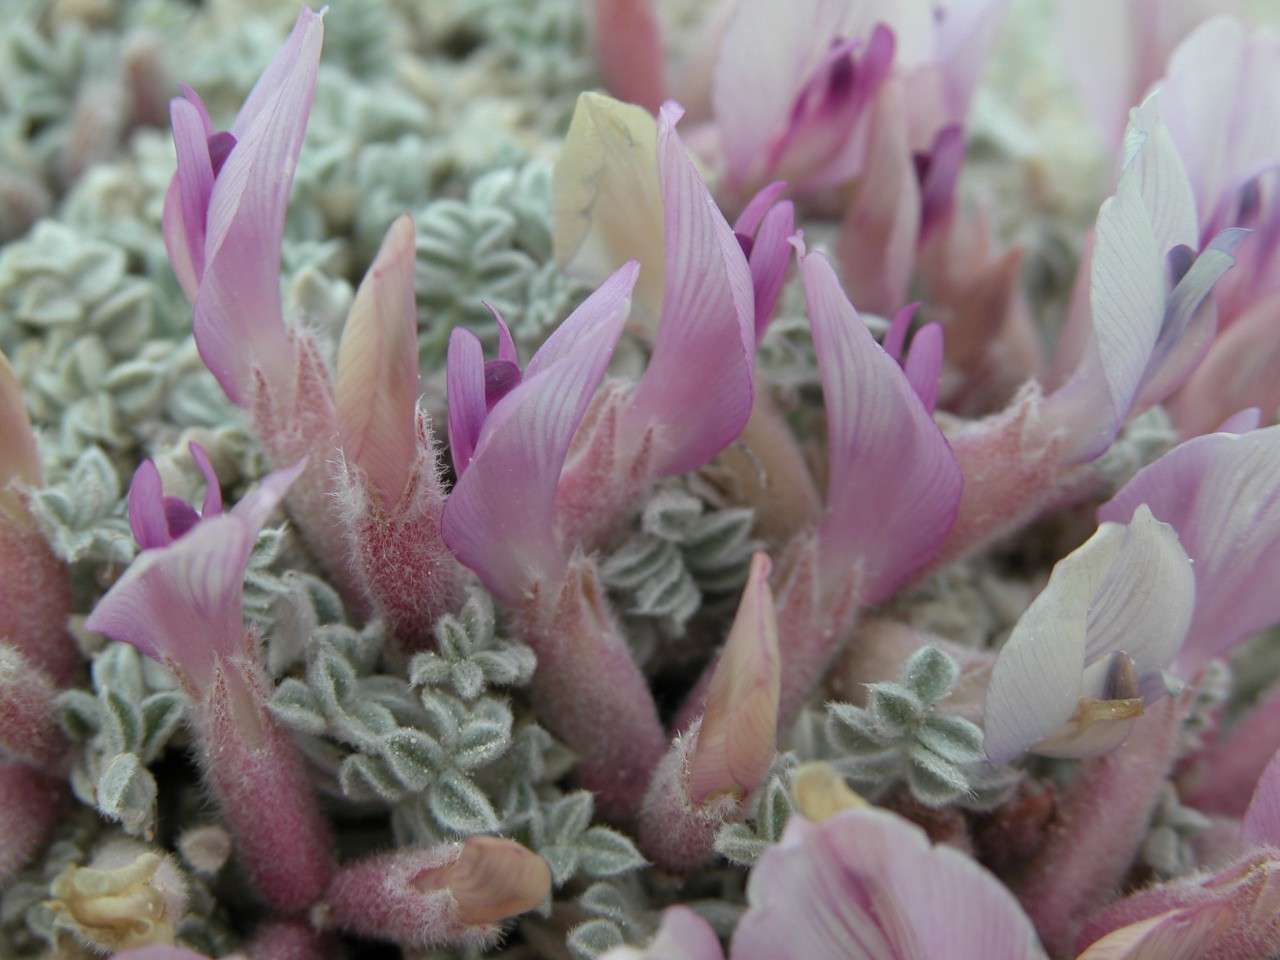 close up photo of milk-vetch plant with lavender petals and some light greenery